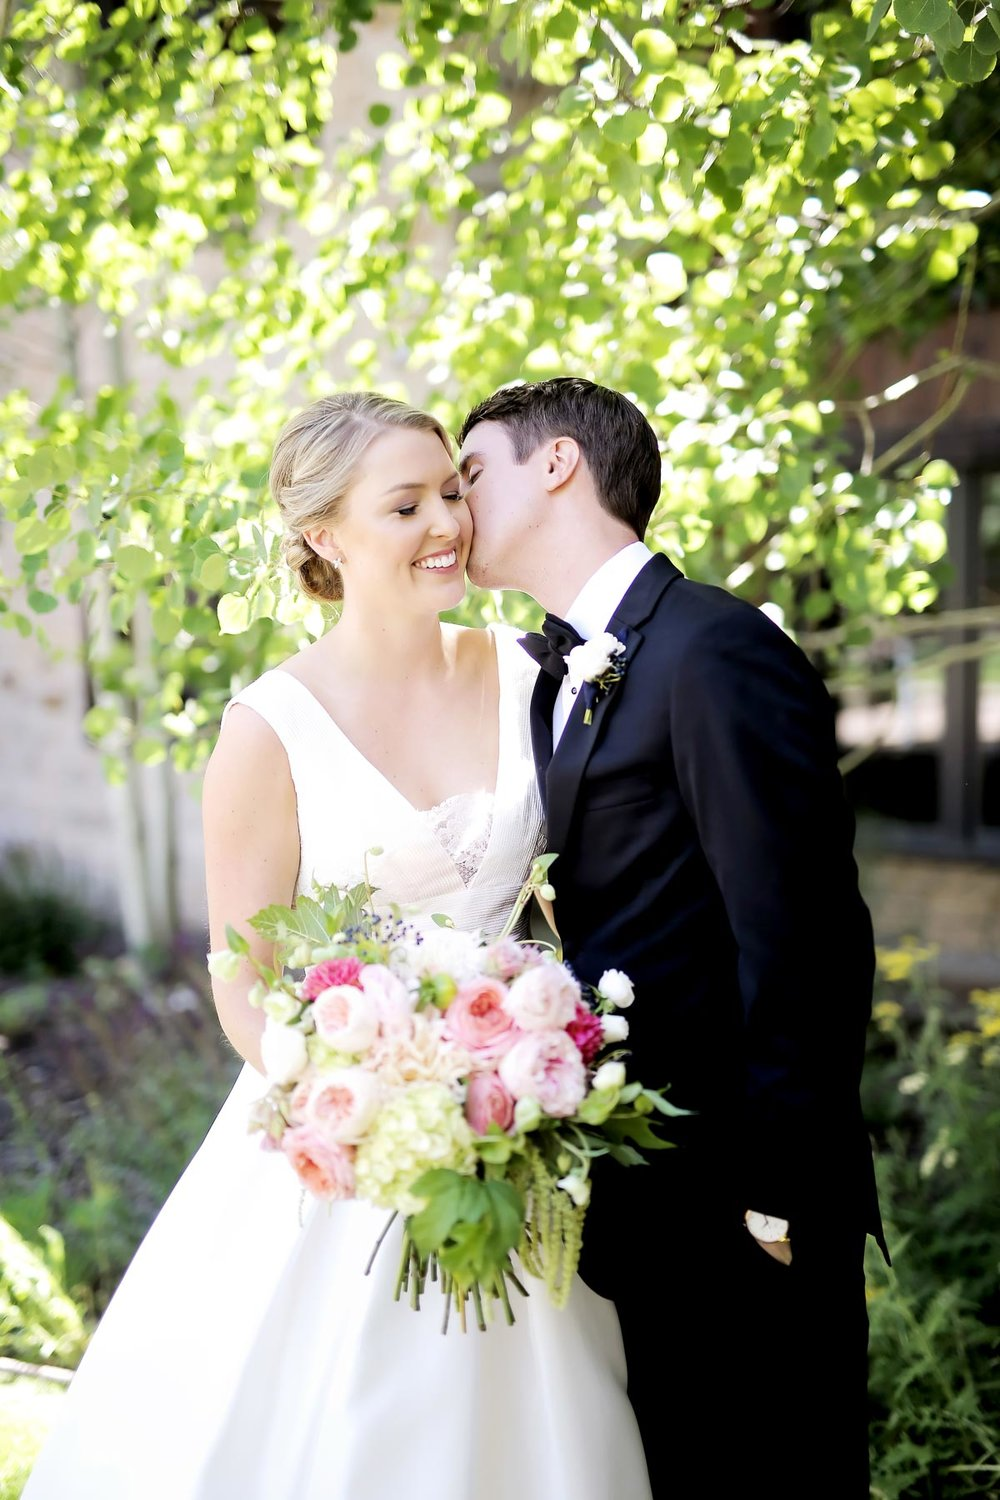 bride-and-groom-kiss-pink-bridal-bouquet-pepper-nix-photography.jpg